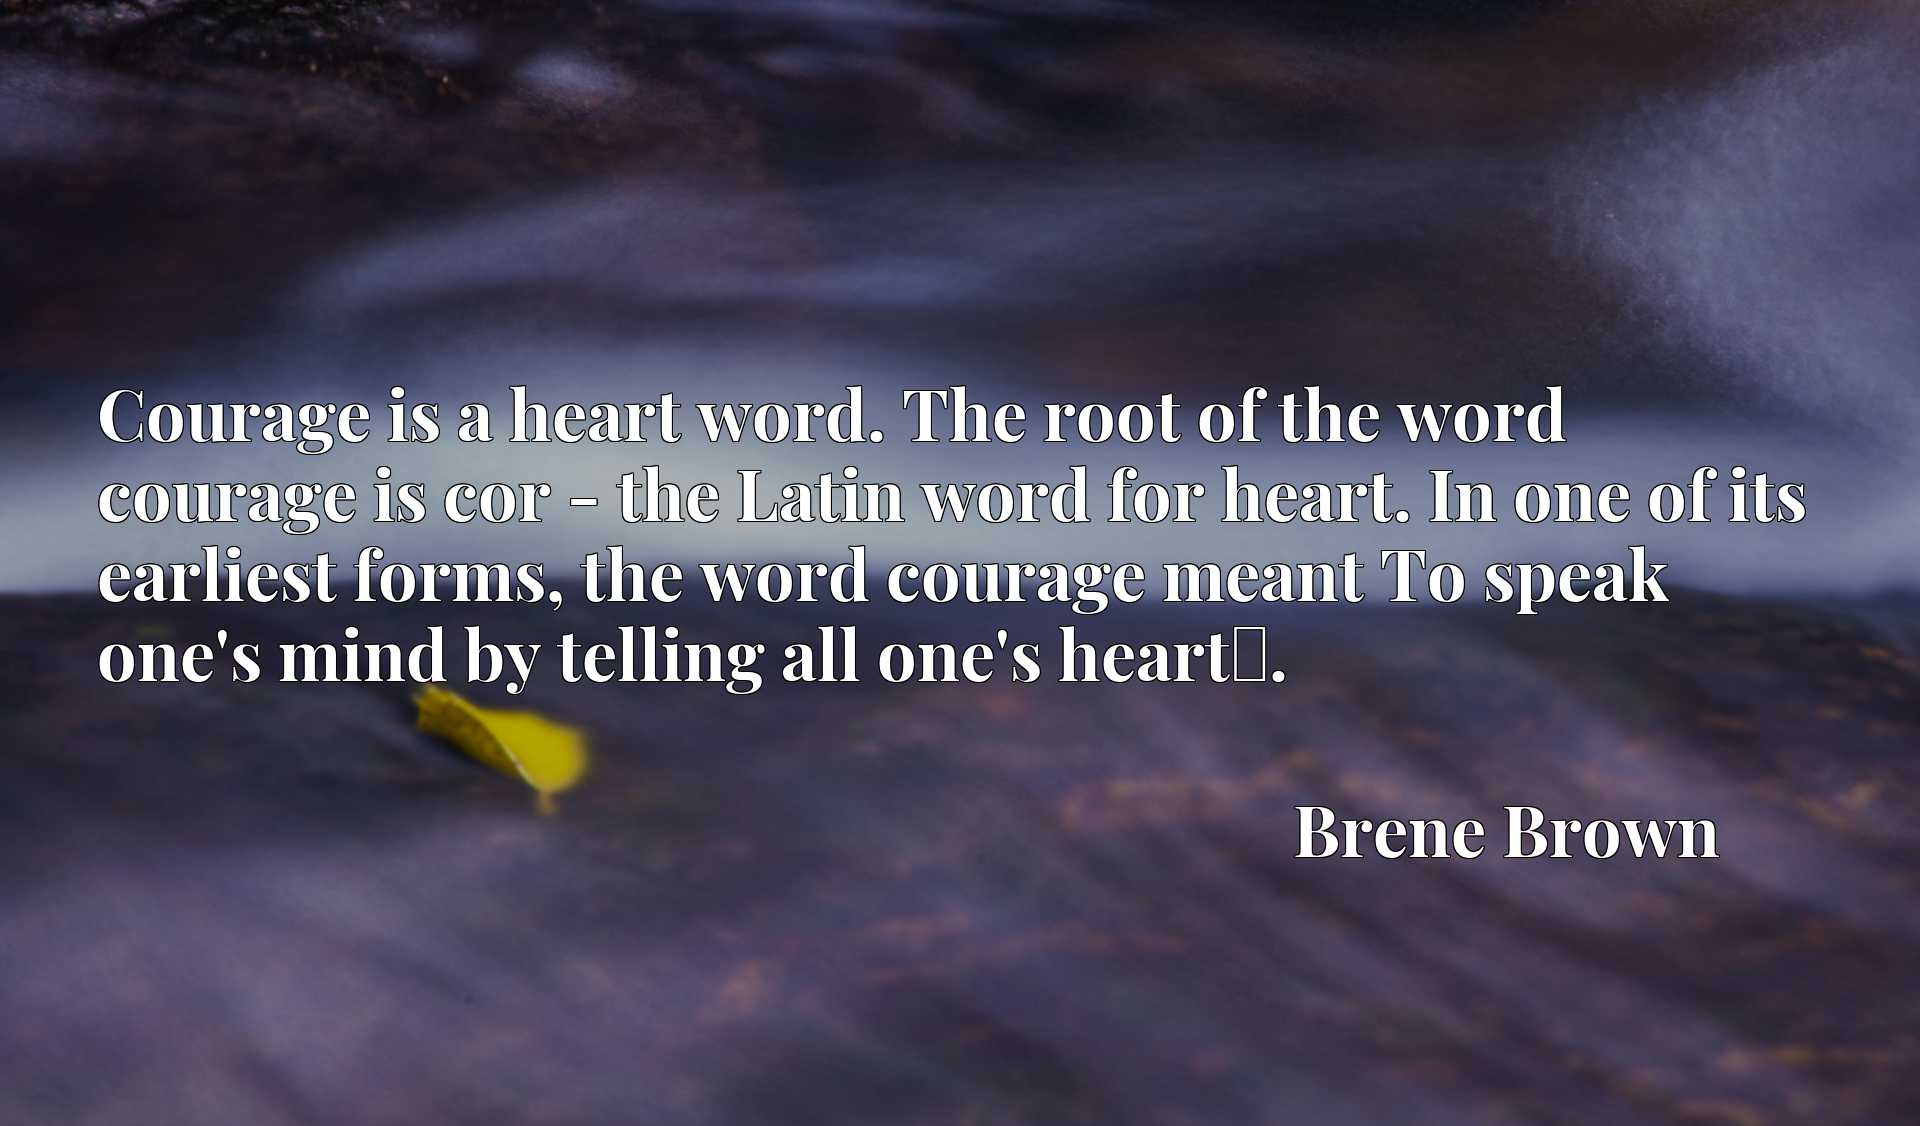 Courage is a heart word. The root of the word courage is cor - the Latin word for heart. In one of its earliest forms, the word courage meant To speak one's mind by telling all one's heartx9d.